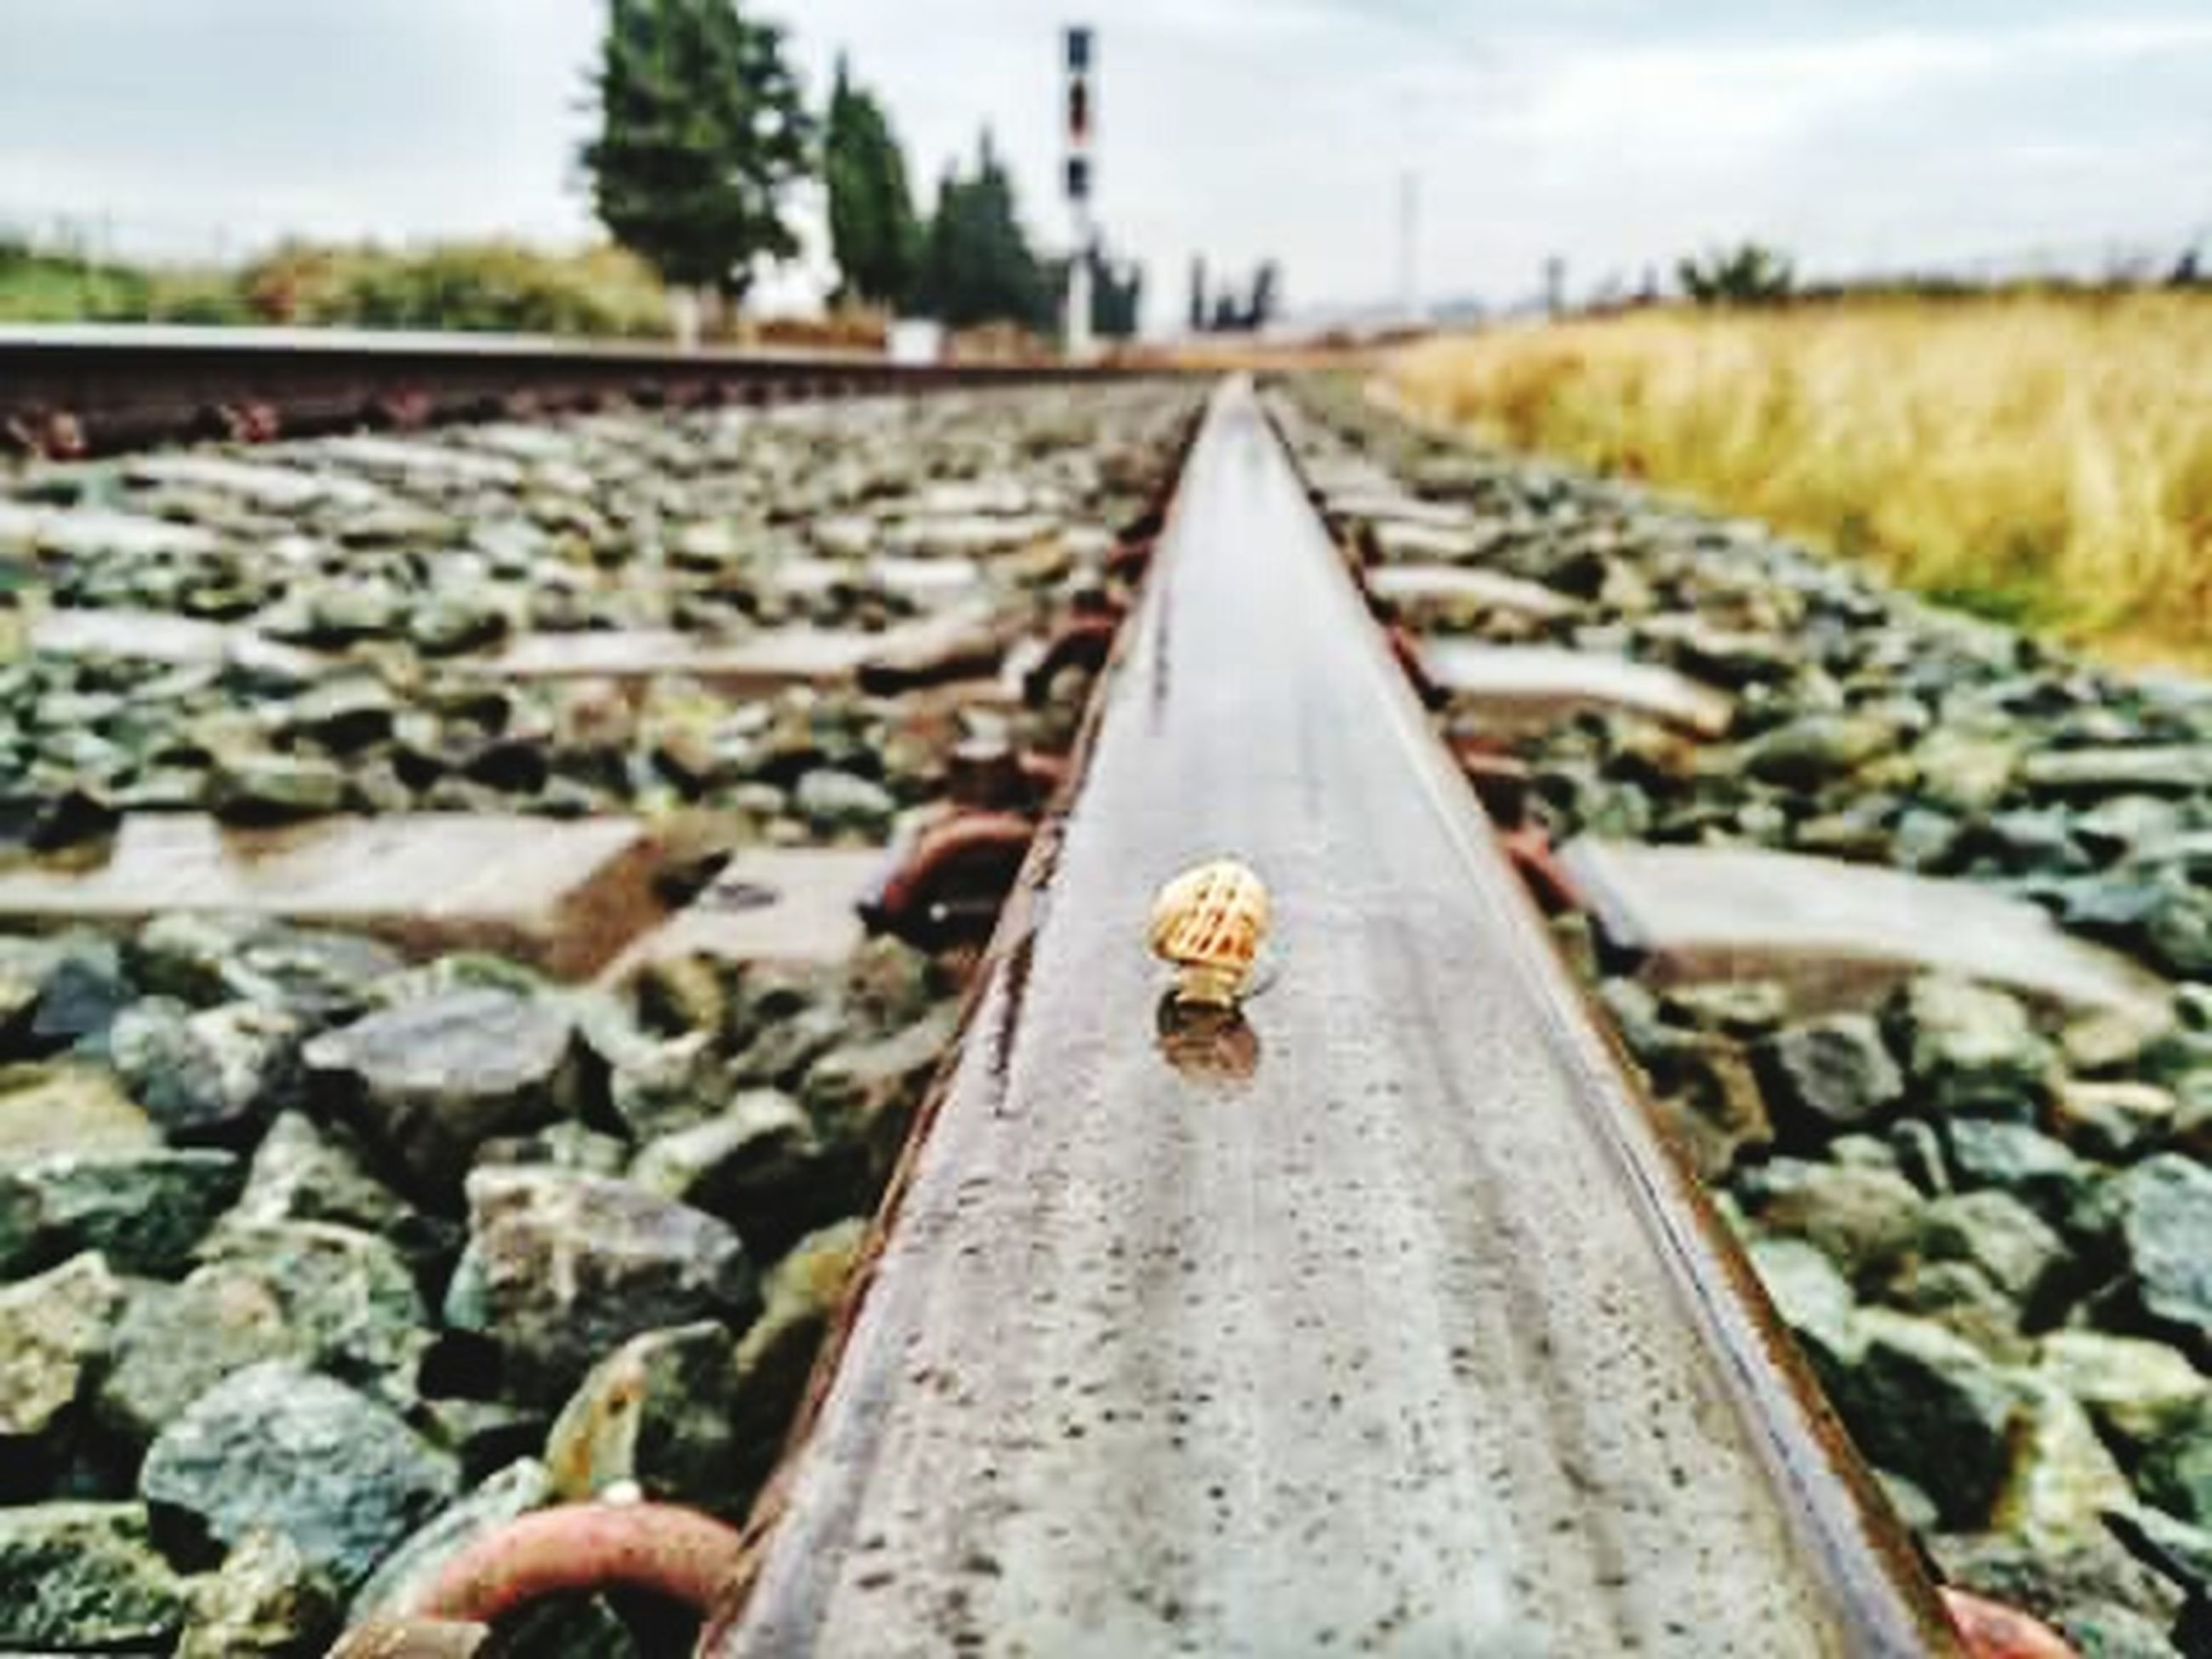 railroad track, transportation, diminishing perspective, the way forward, rail transportation, vanishing point, focus on foreground, metal, selective focus, surface level, sky, day, close-up, outdoors, gravel, nature, tree, rusty, straight, no people